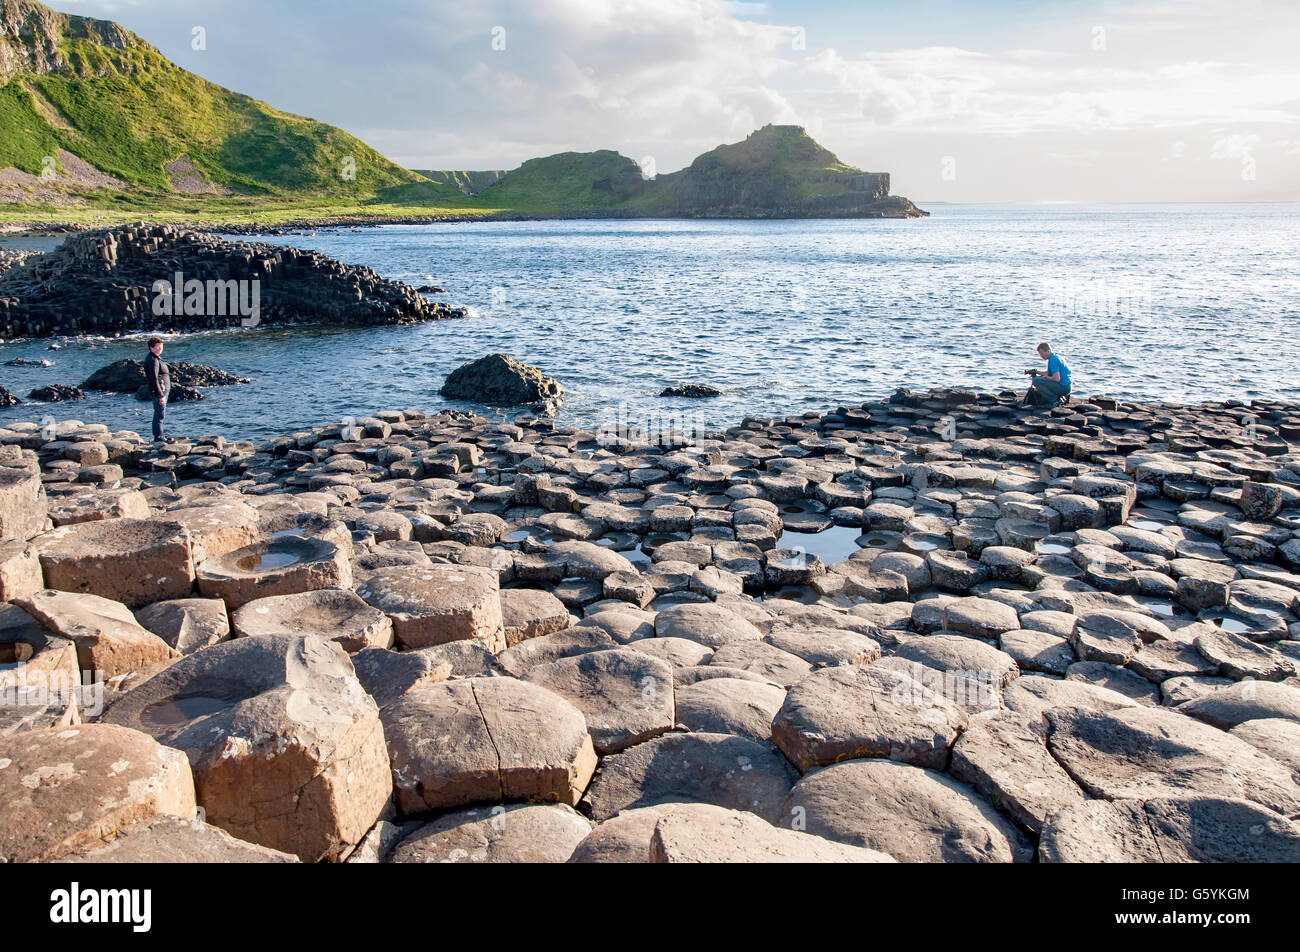 Tourists taking photos on Giants Causeway, unique geological hexagonal formations of volcanic basalt rocks in Northern - Stock Image